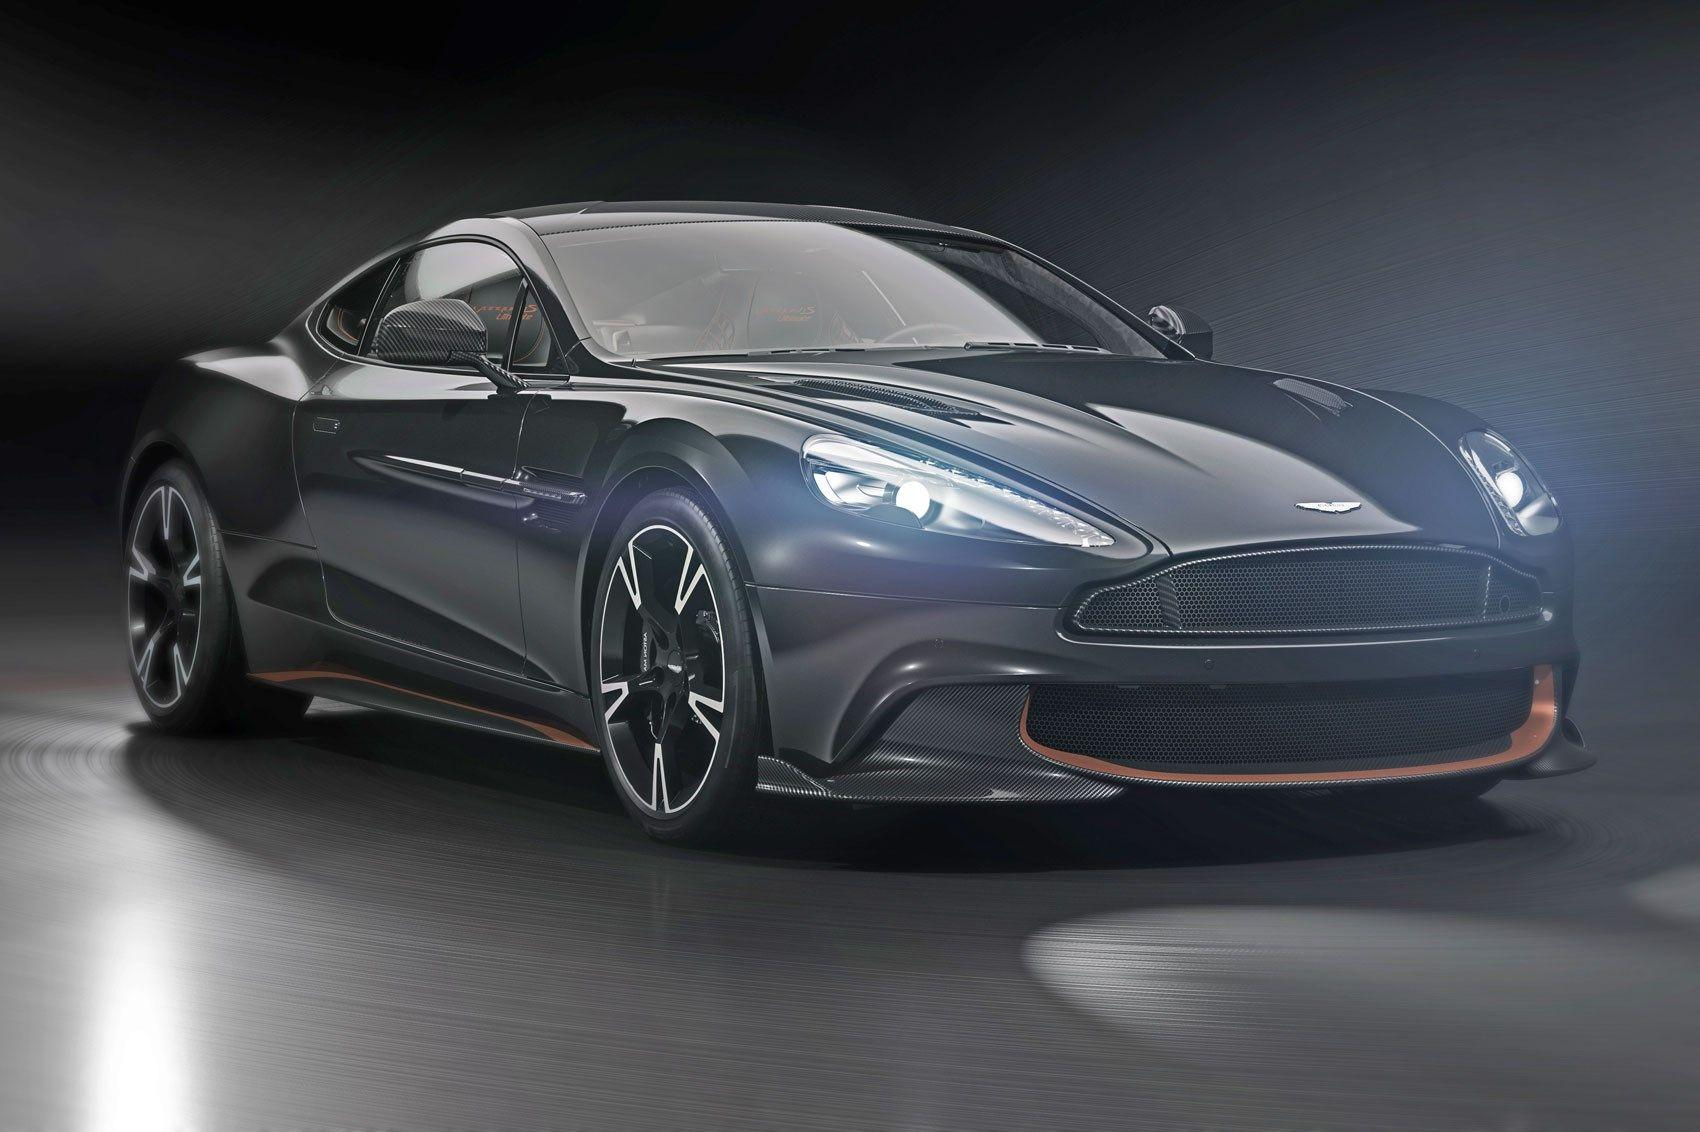 Aston Martin Vanquish S Ultimate edition: a final farewell for